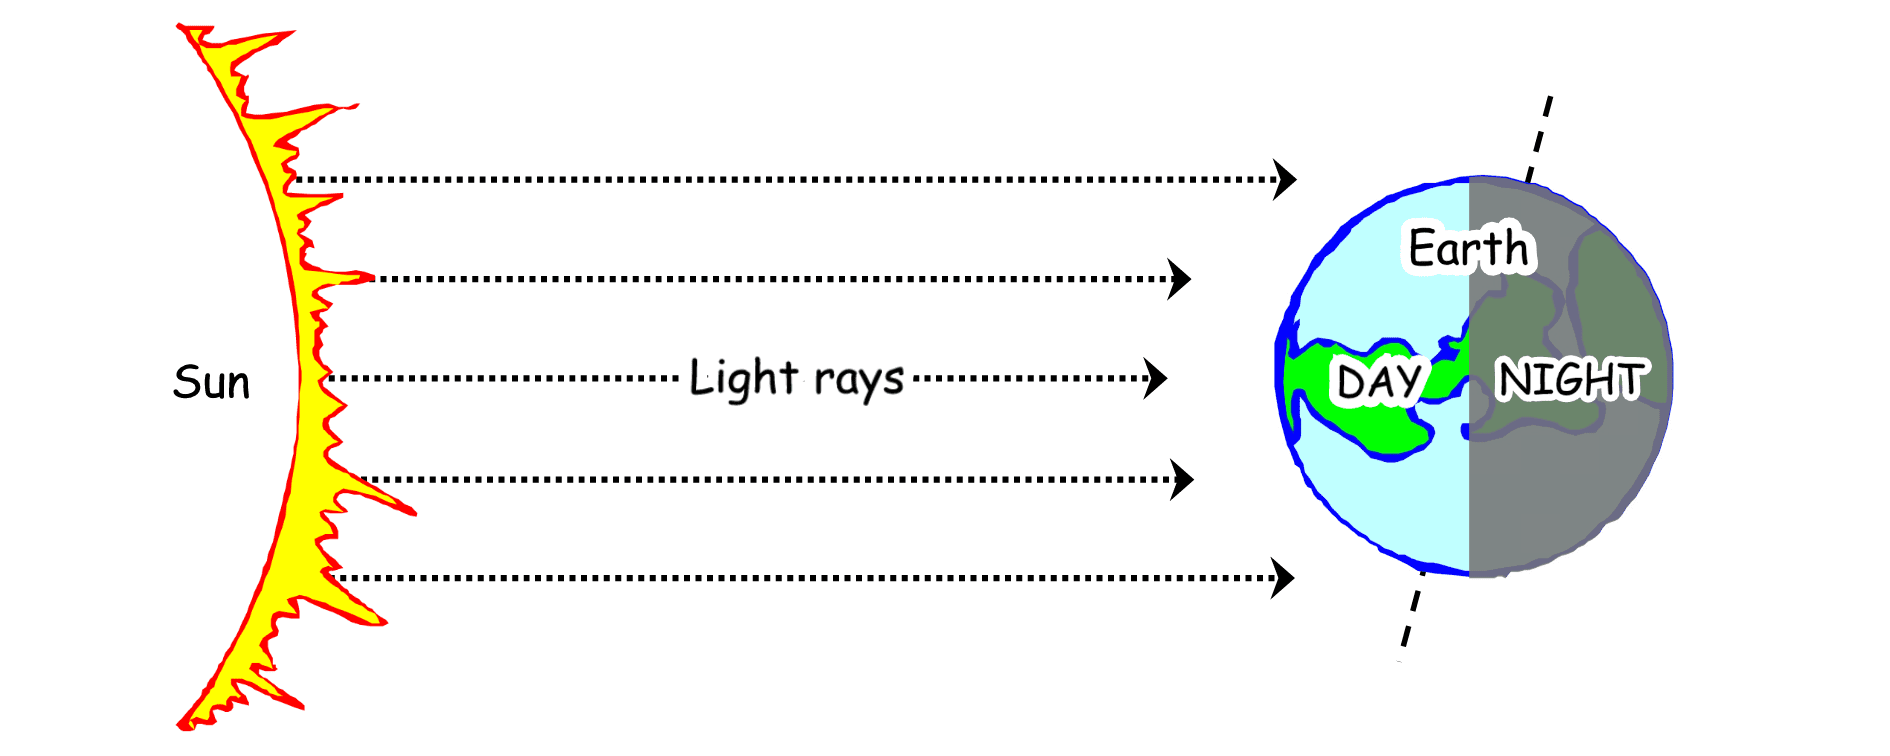 hight resolution of Lesson 3 - Day and Night (90+ minutes) - What's going on in Mr. Solarz'  Class?